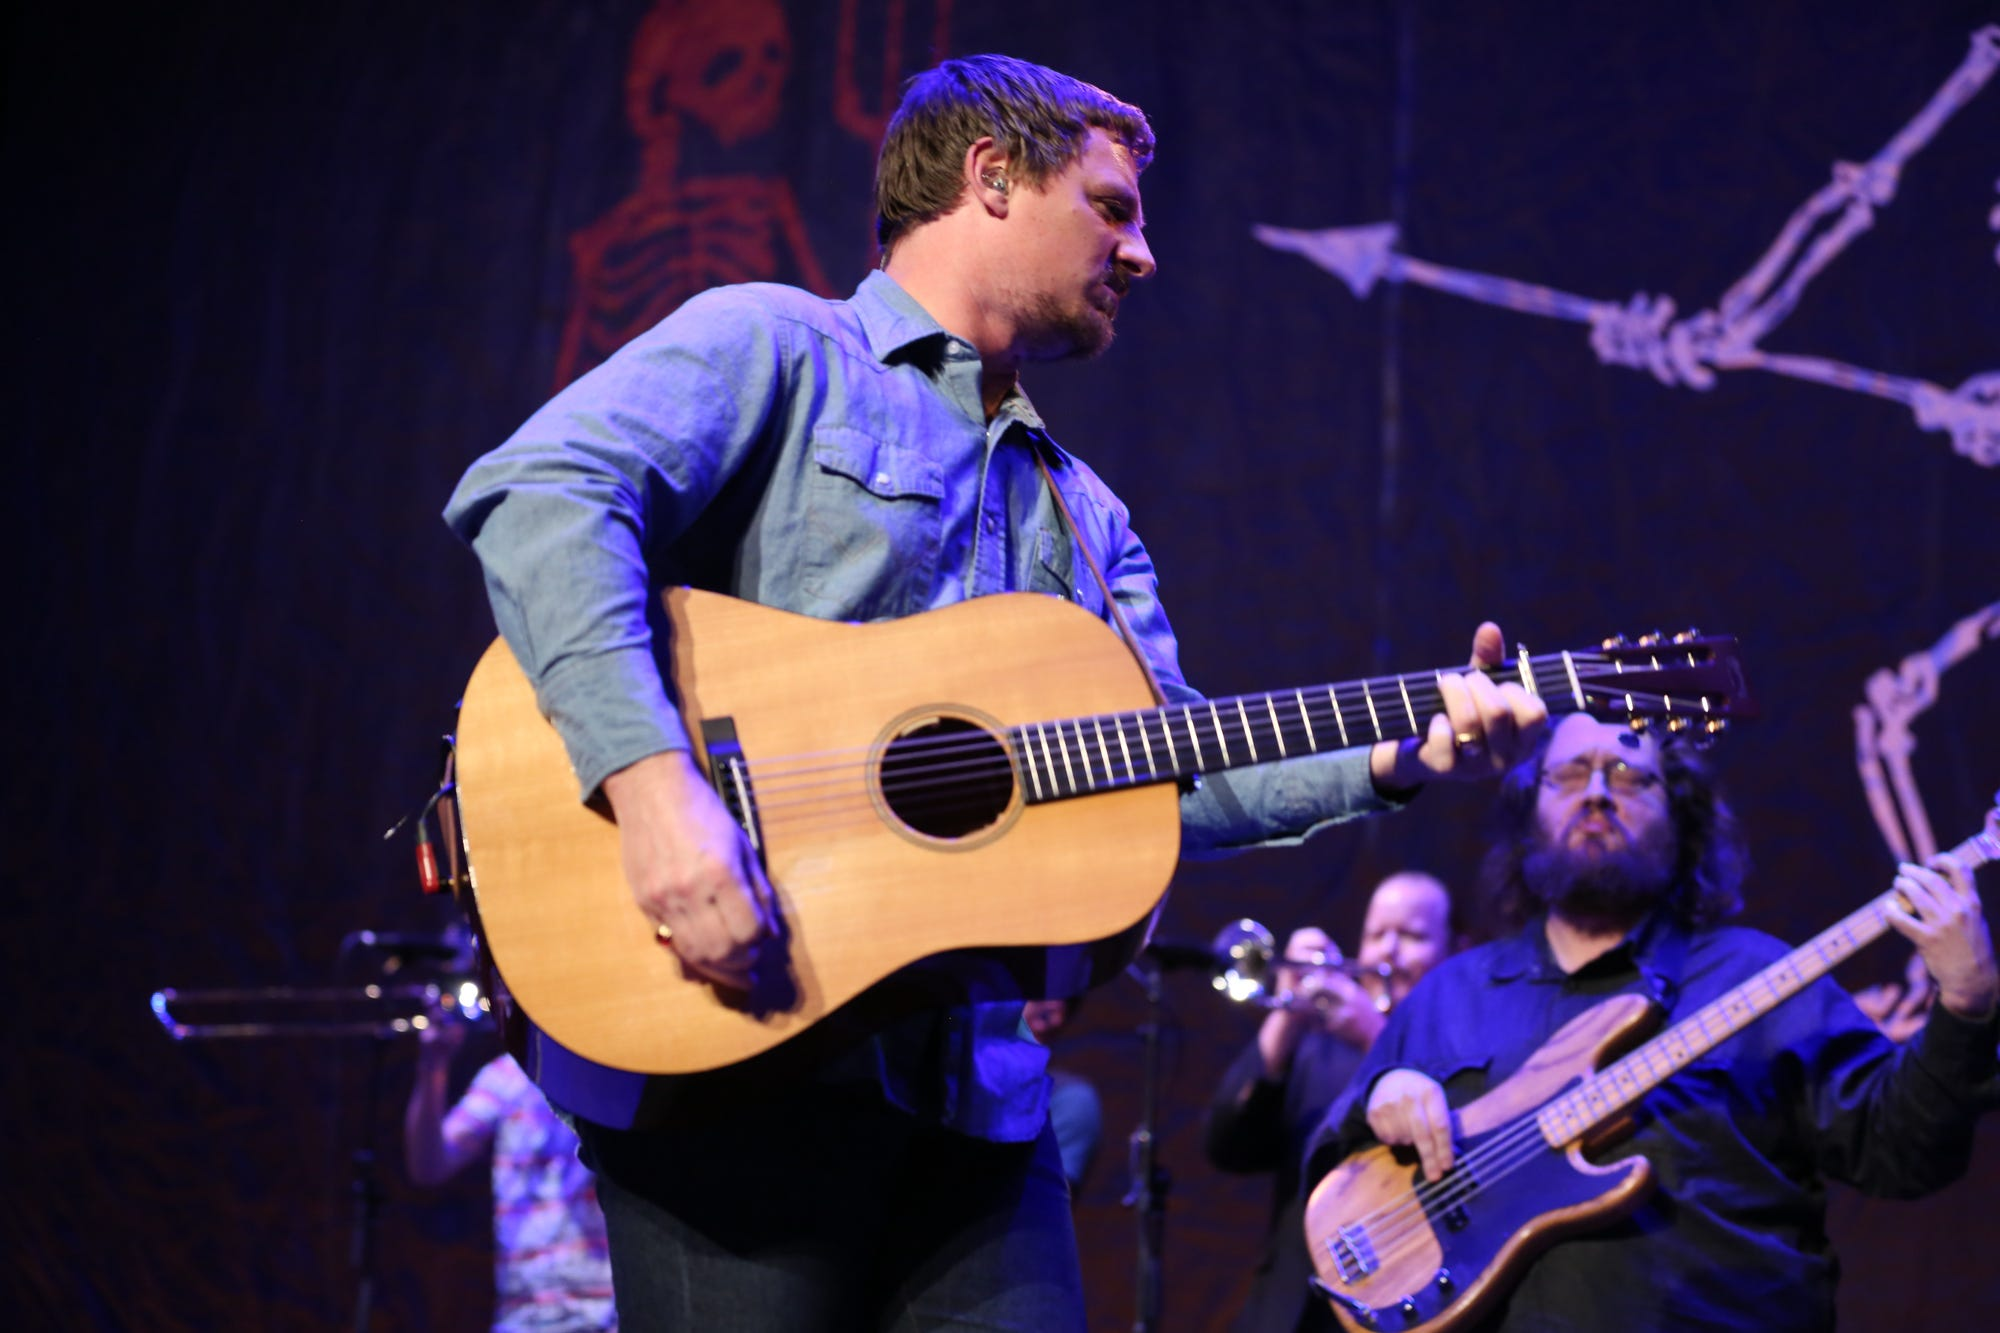 Sturgill Simpson trades country croon for rip-roaring rock on 'Sound & Fury' album, Netflix film